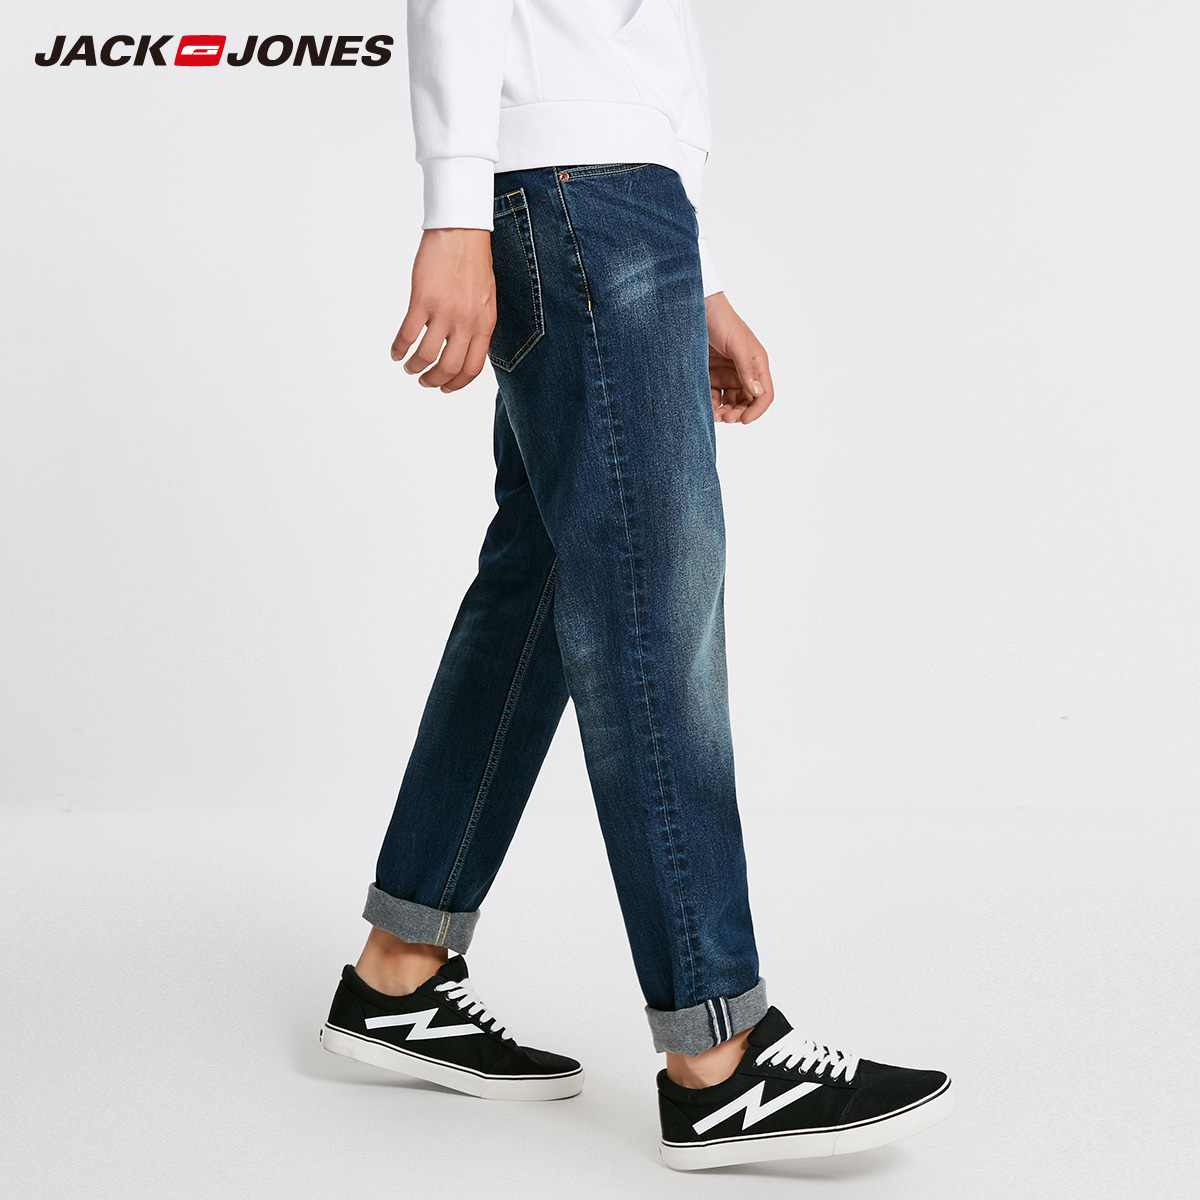 Image 2 - Jack Jones Men Jeans Brand Thick Warm Cotton Solid Straight Jeans Denim Trousers Mens Biker Jeans  218432505-in Jeans from Men's Clothing